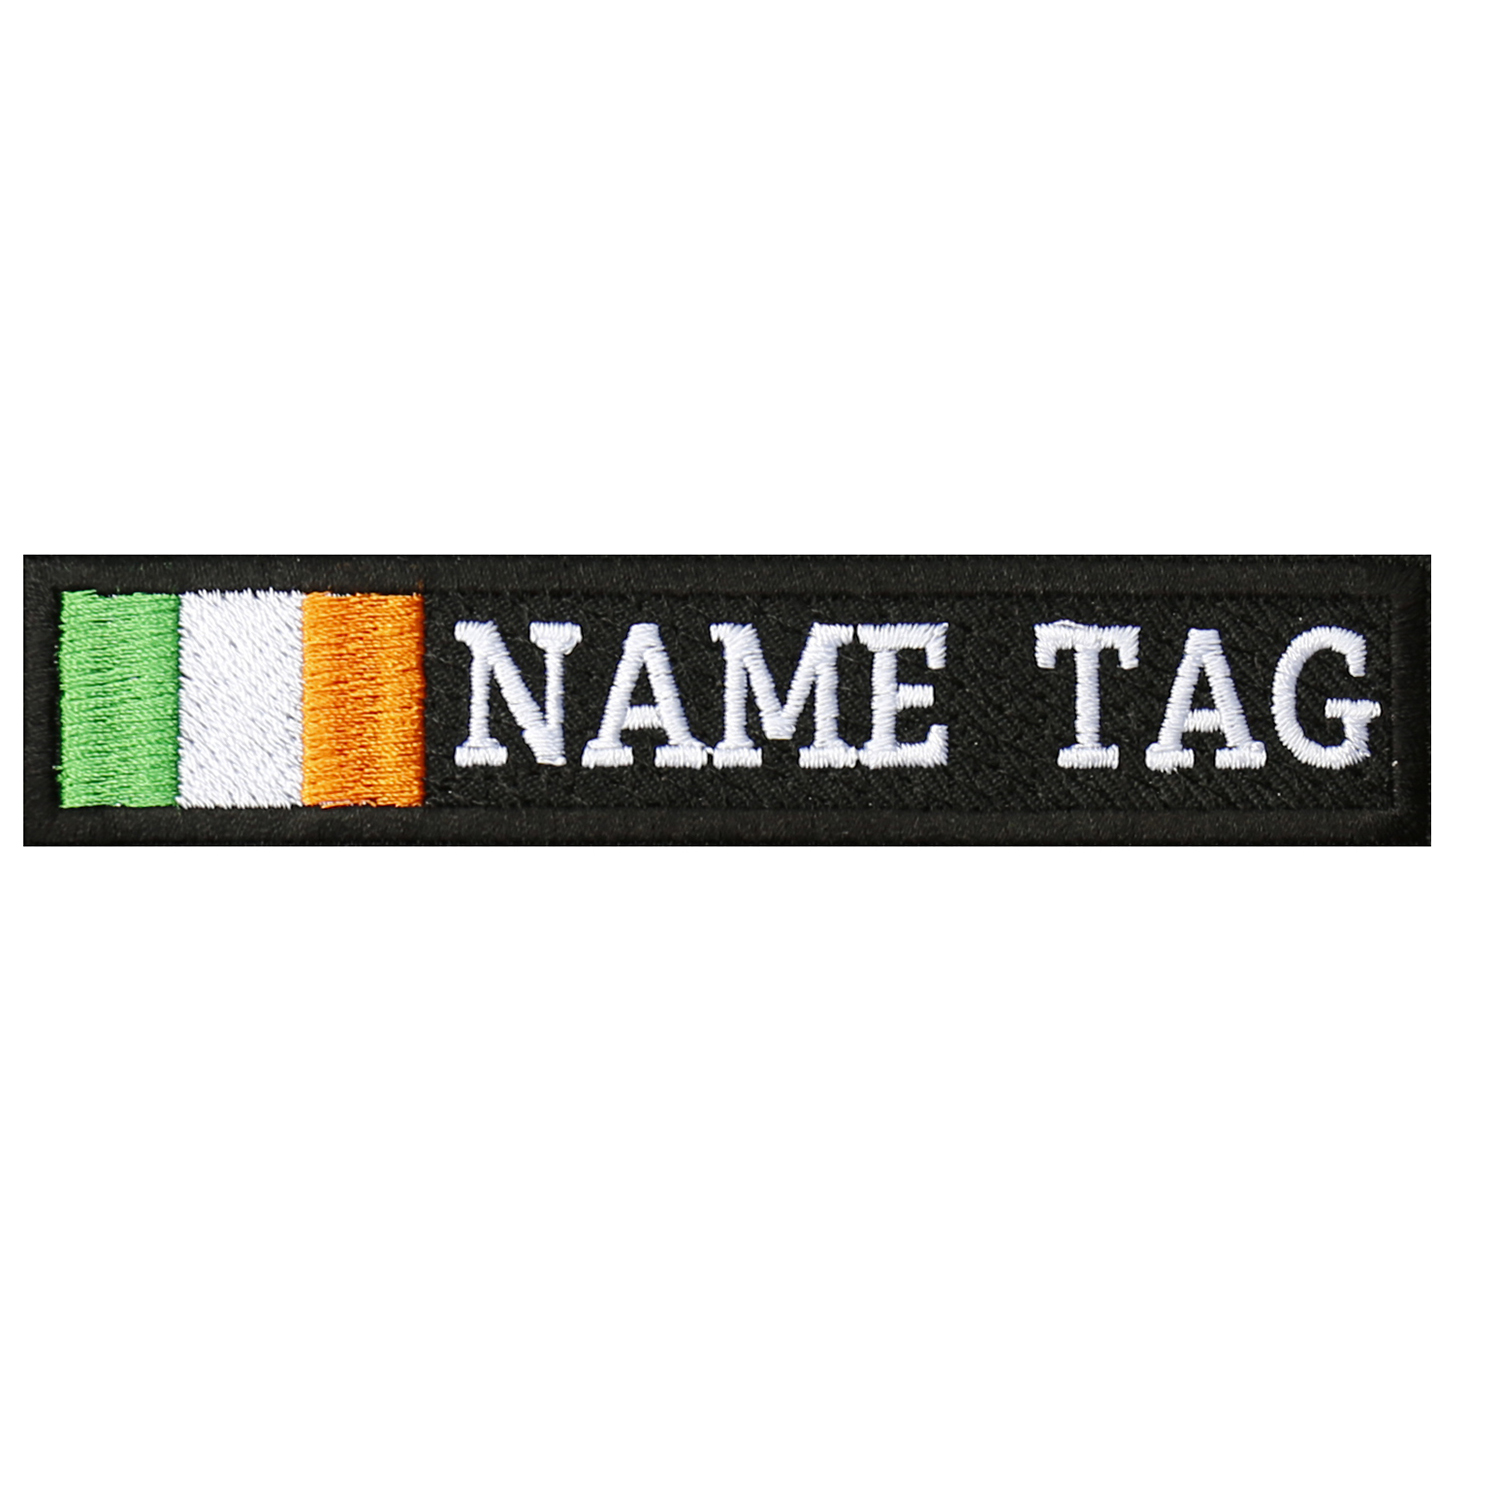 IRELAND Flag Custom Name Tag Biker Vest Patch